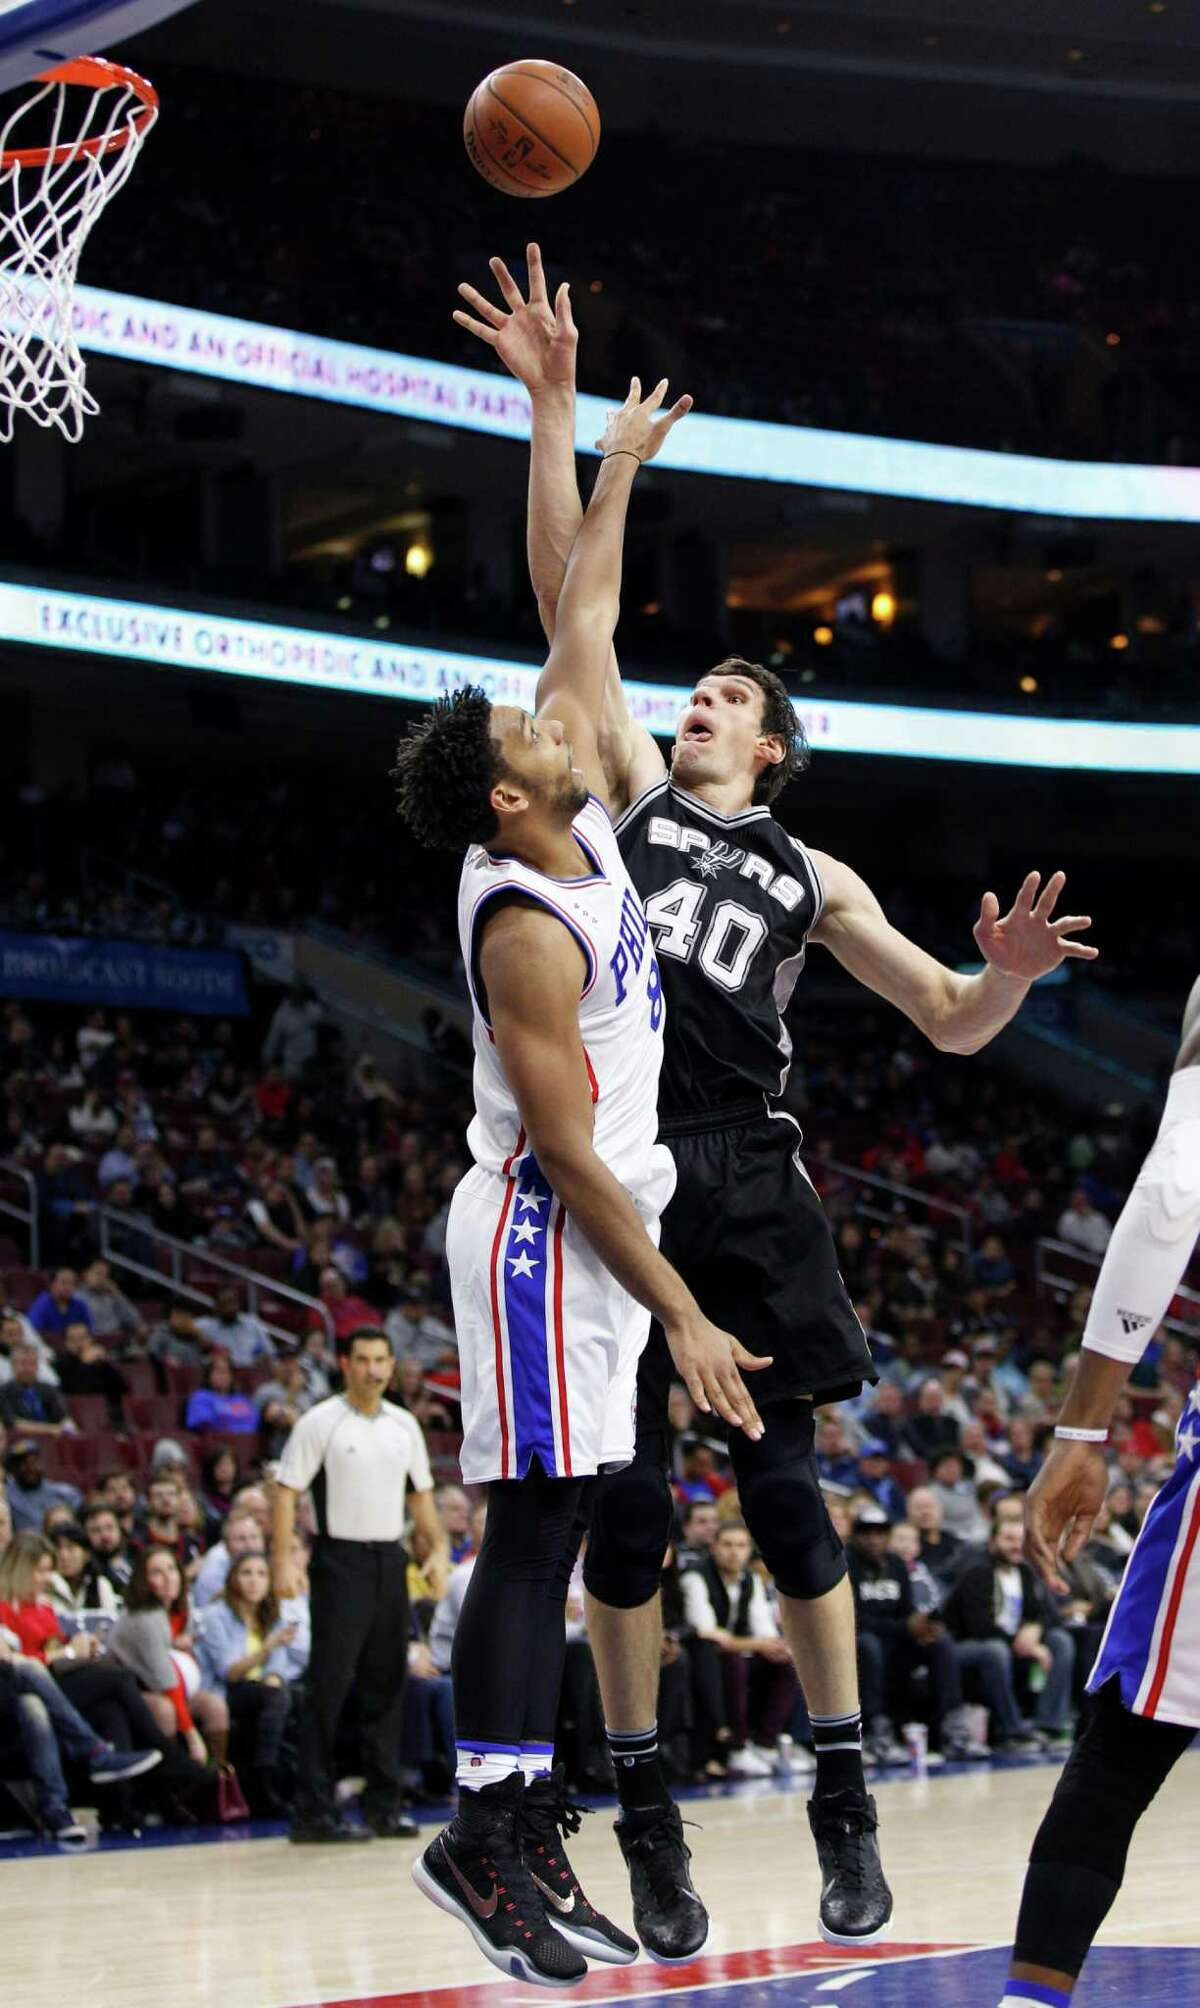 2795 x 4675~~$~~San Antonio Spurs' Boban Marjanovic, right, of Serbia puts up the shot over Philadelphia 76ers' Jahlil Okafor, left, during the second half of an NBA basketball game, Monday, Dec. 7, 2015, in Philadelphia.